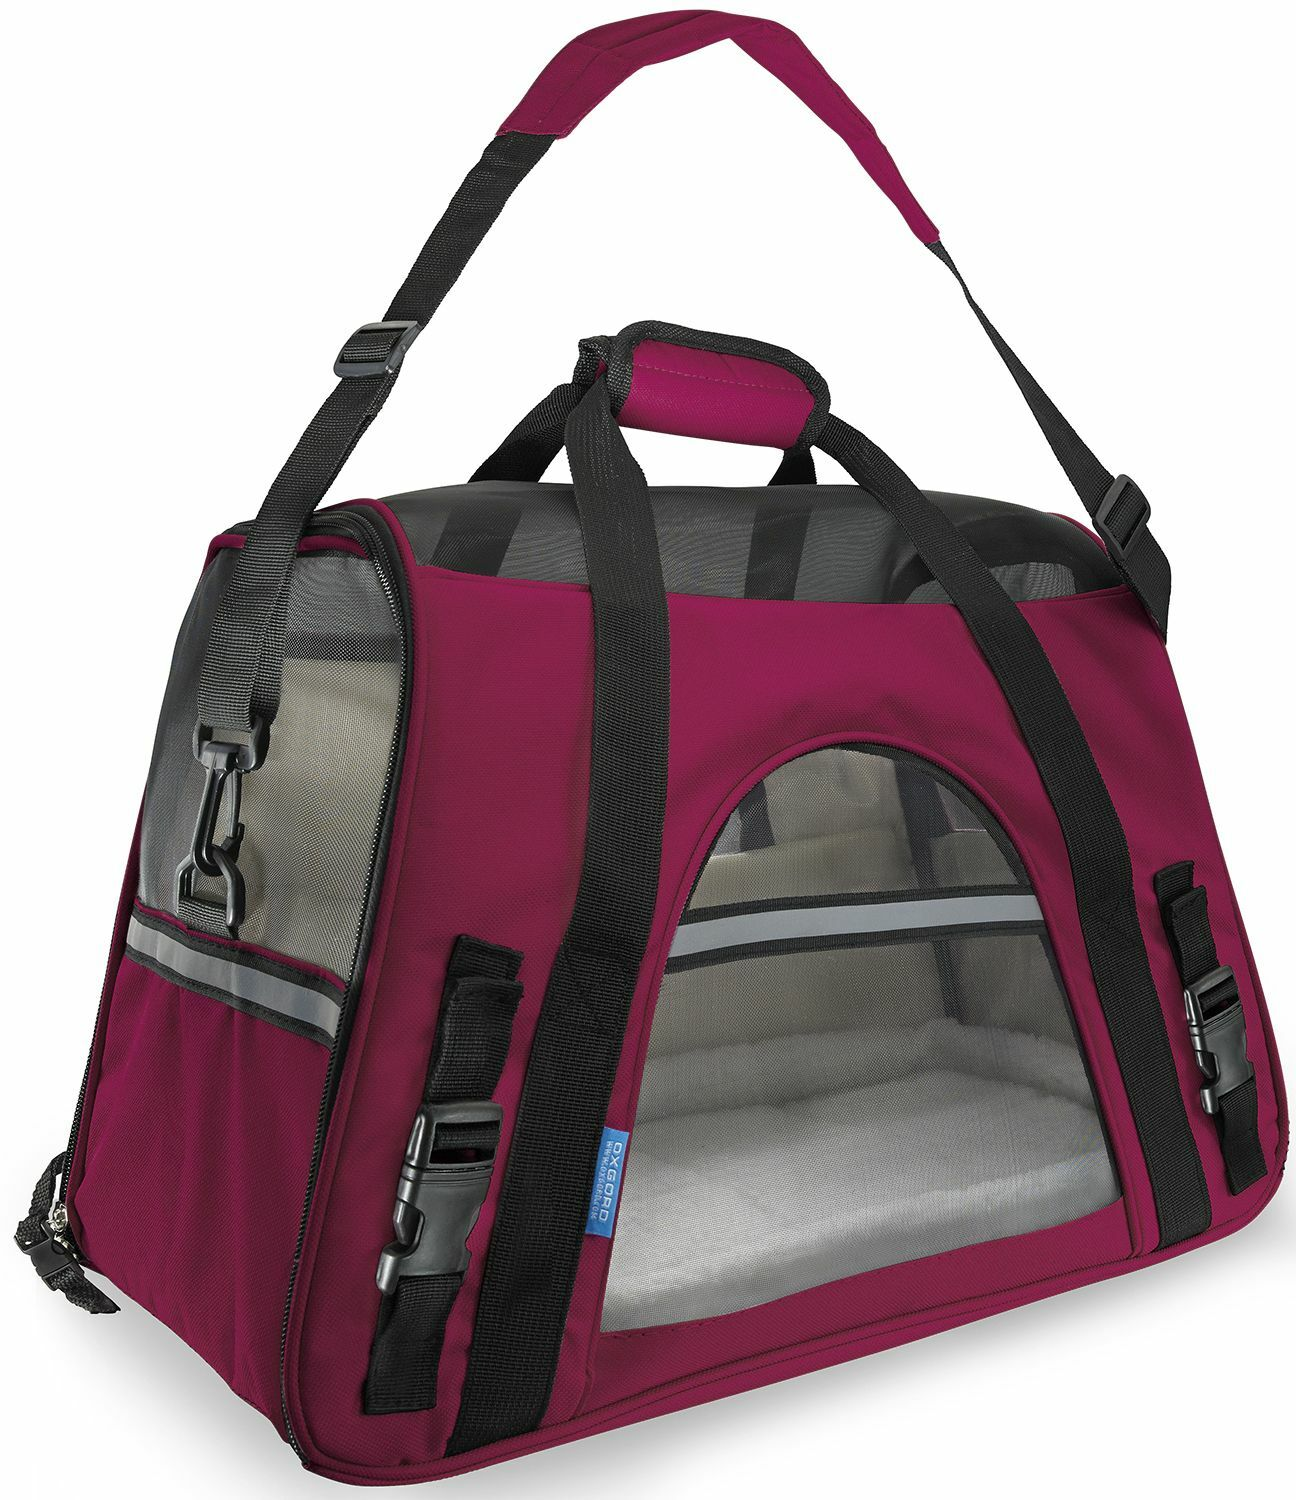 Pet Carrier with Fleece Bed Airline Approved Color: Hot Pink, Size: 19